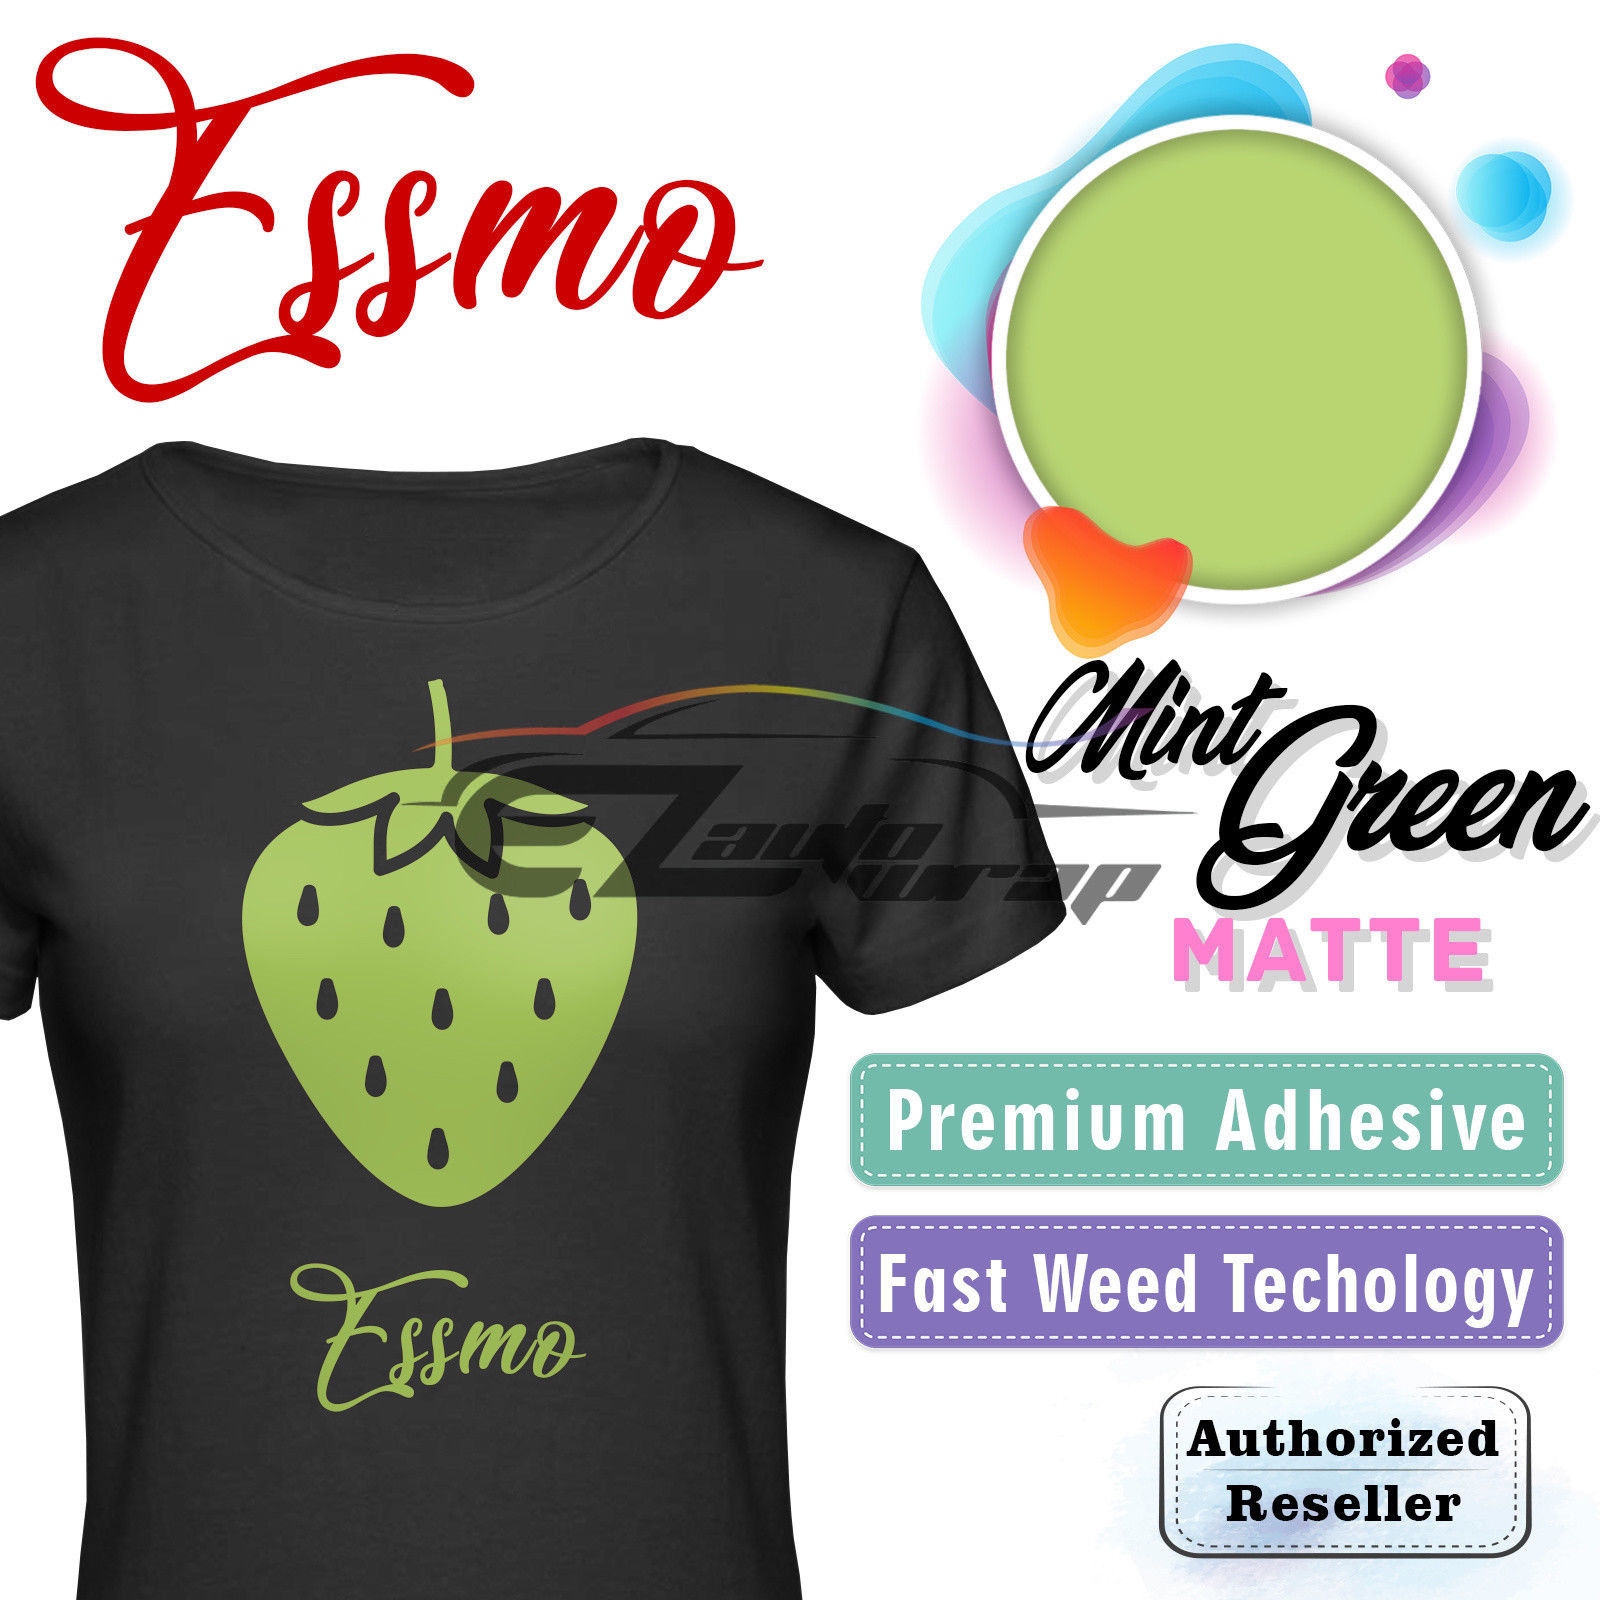 "ESSMO Mint Green Matte Solid Heat Transfer Vinyl HTV Sheet T-Shirt 20"" Wide Iron On Heat Press 20""x24"""